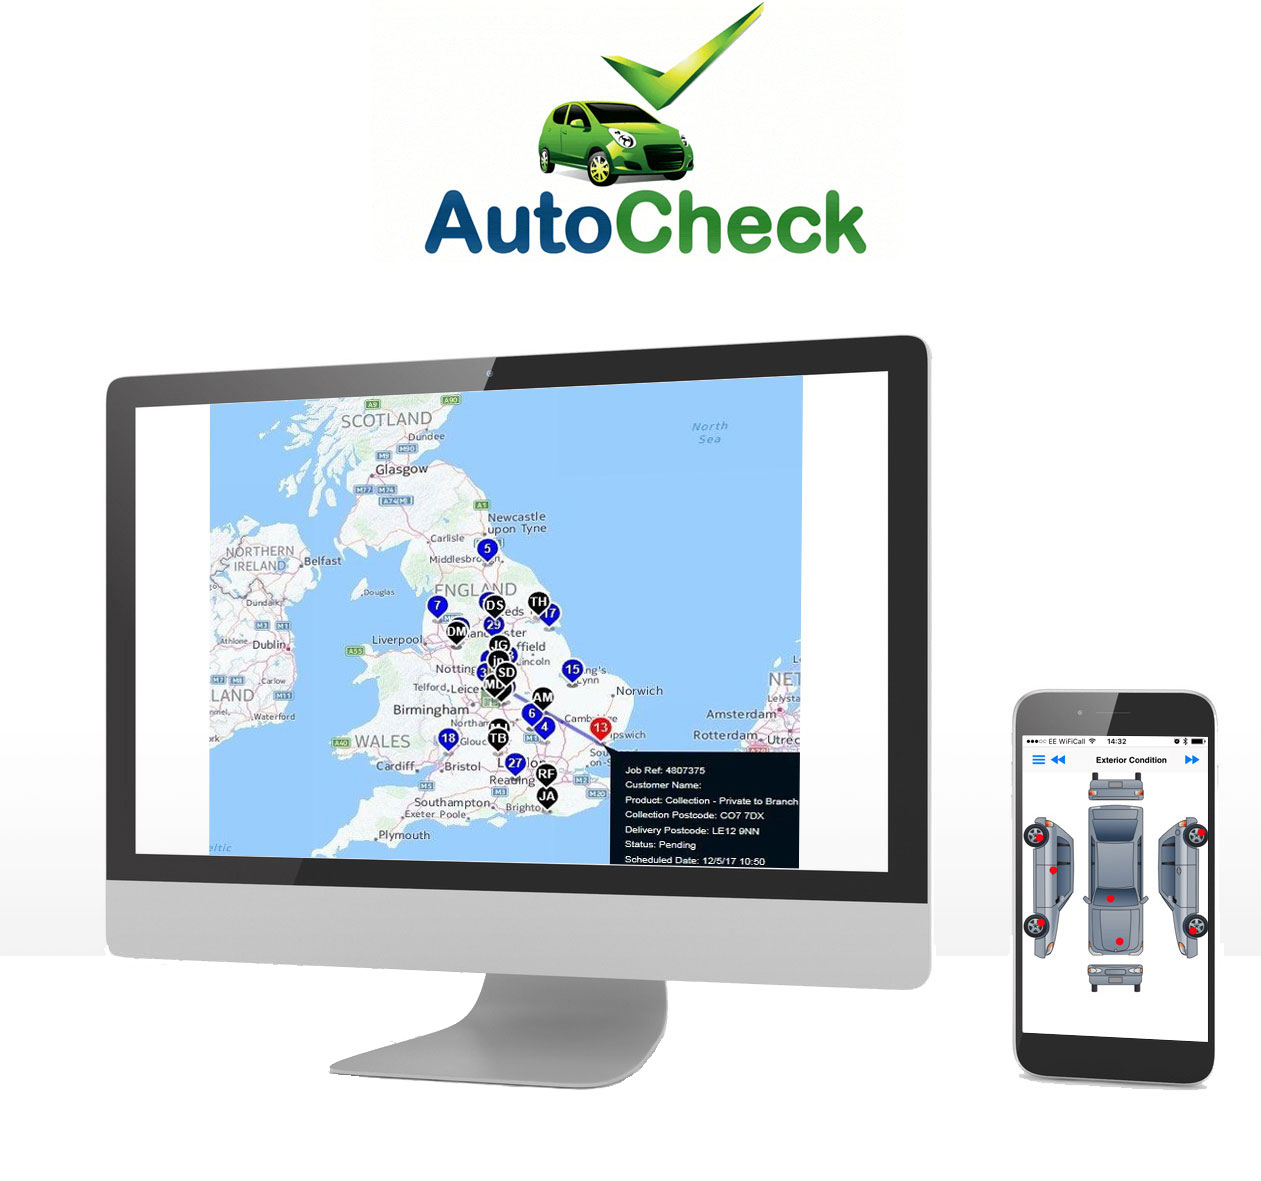 autocheck on a computer and mobile phone